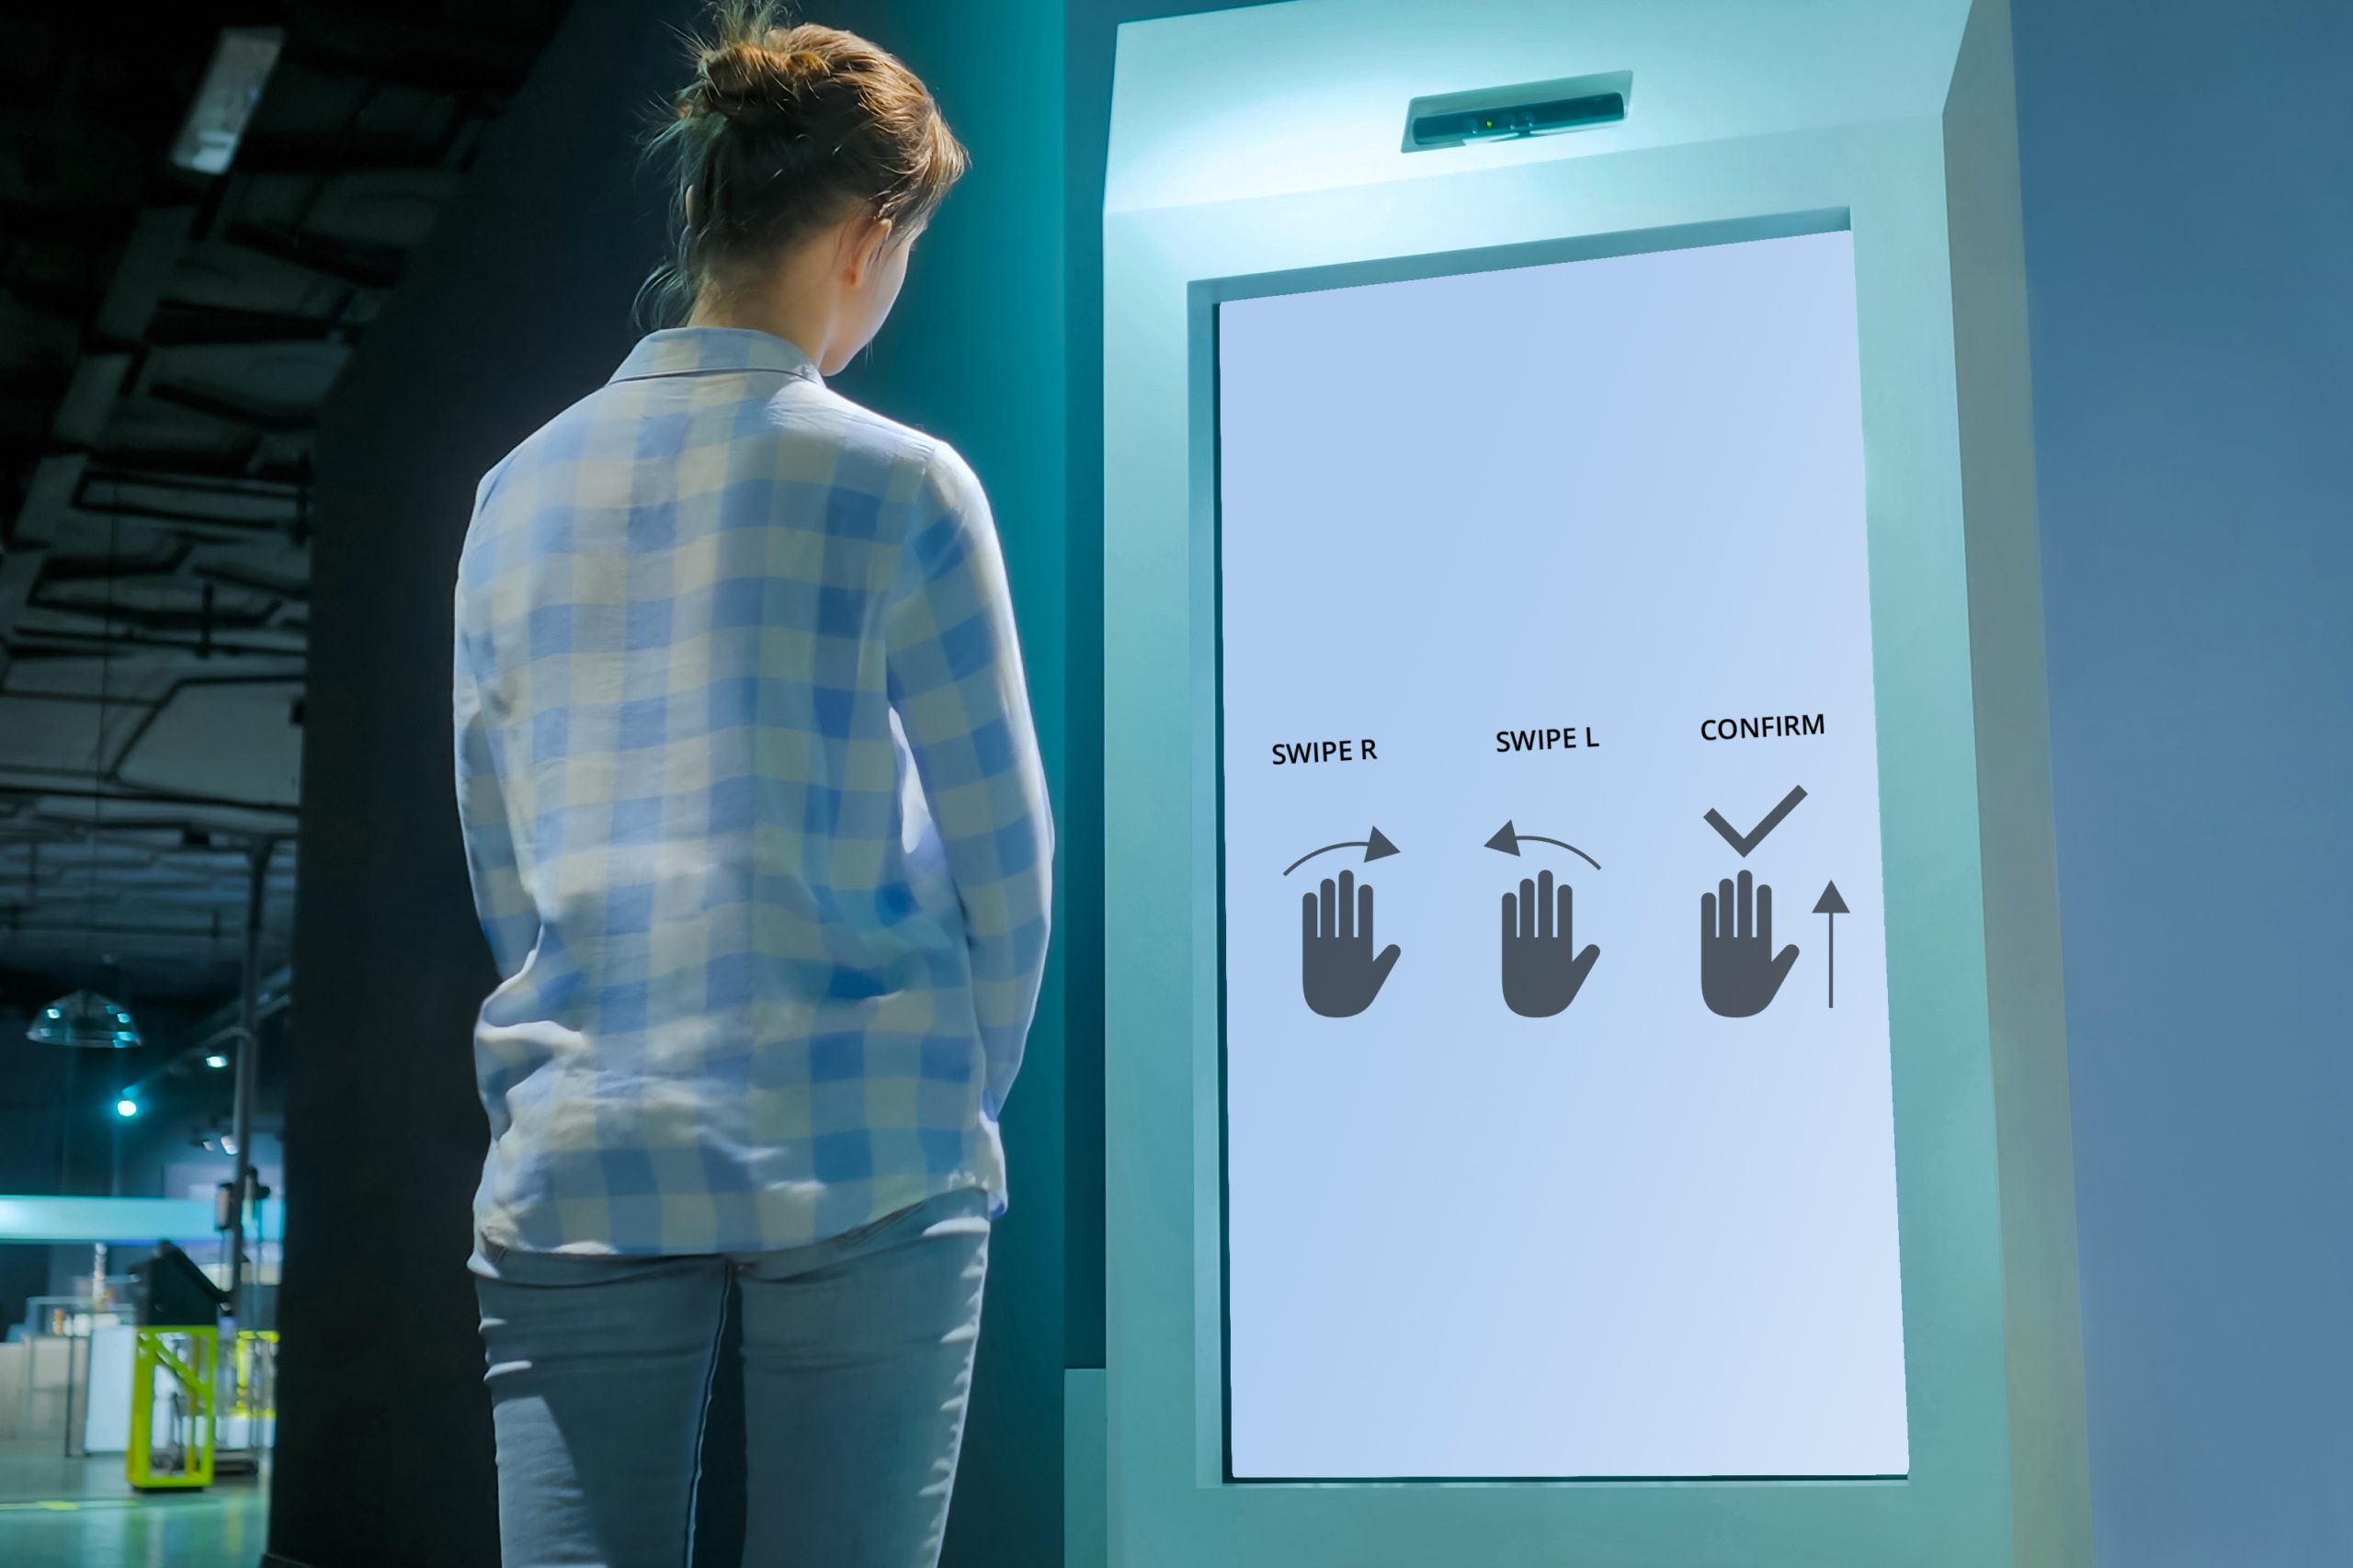 Terabee Blog Terabee Touchless Interface Solutions are Ahead of Industry Trends